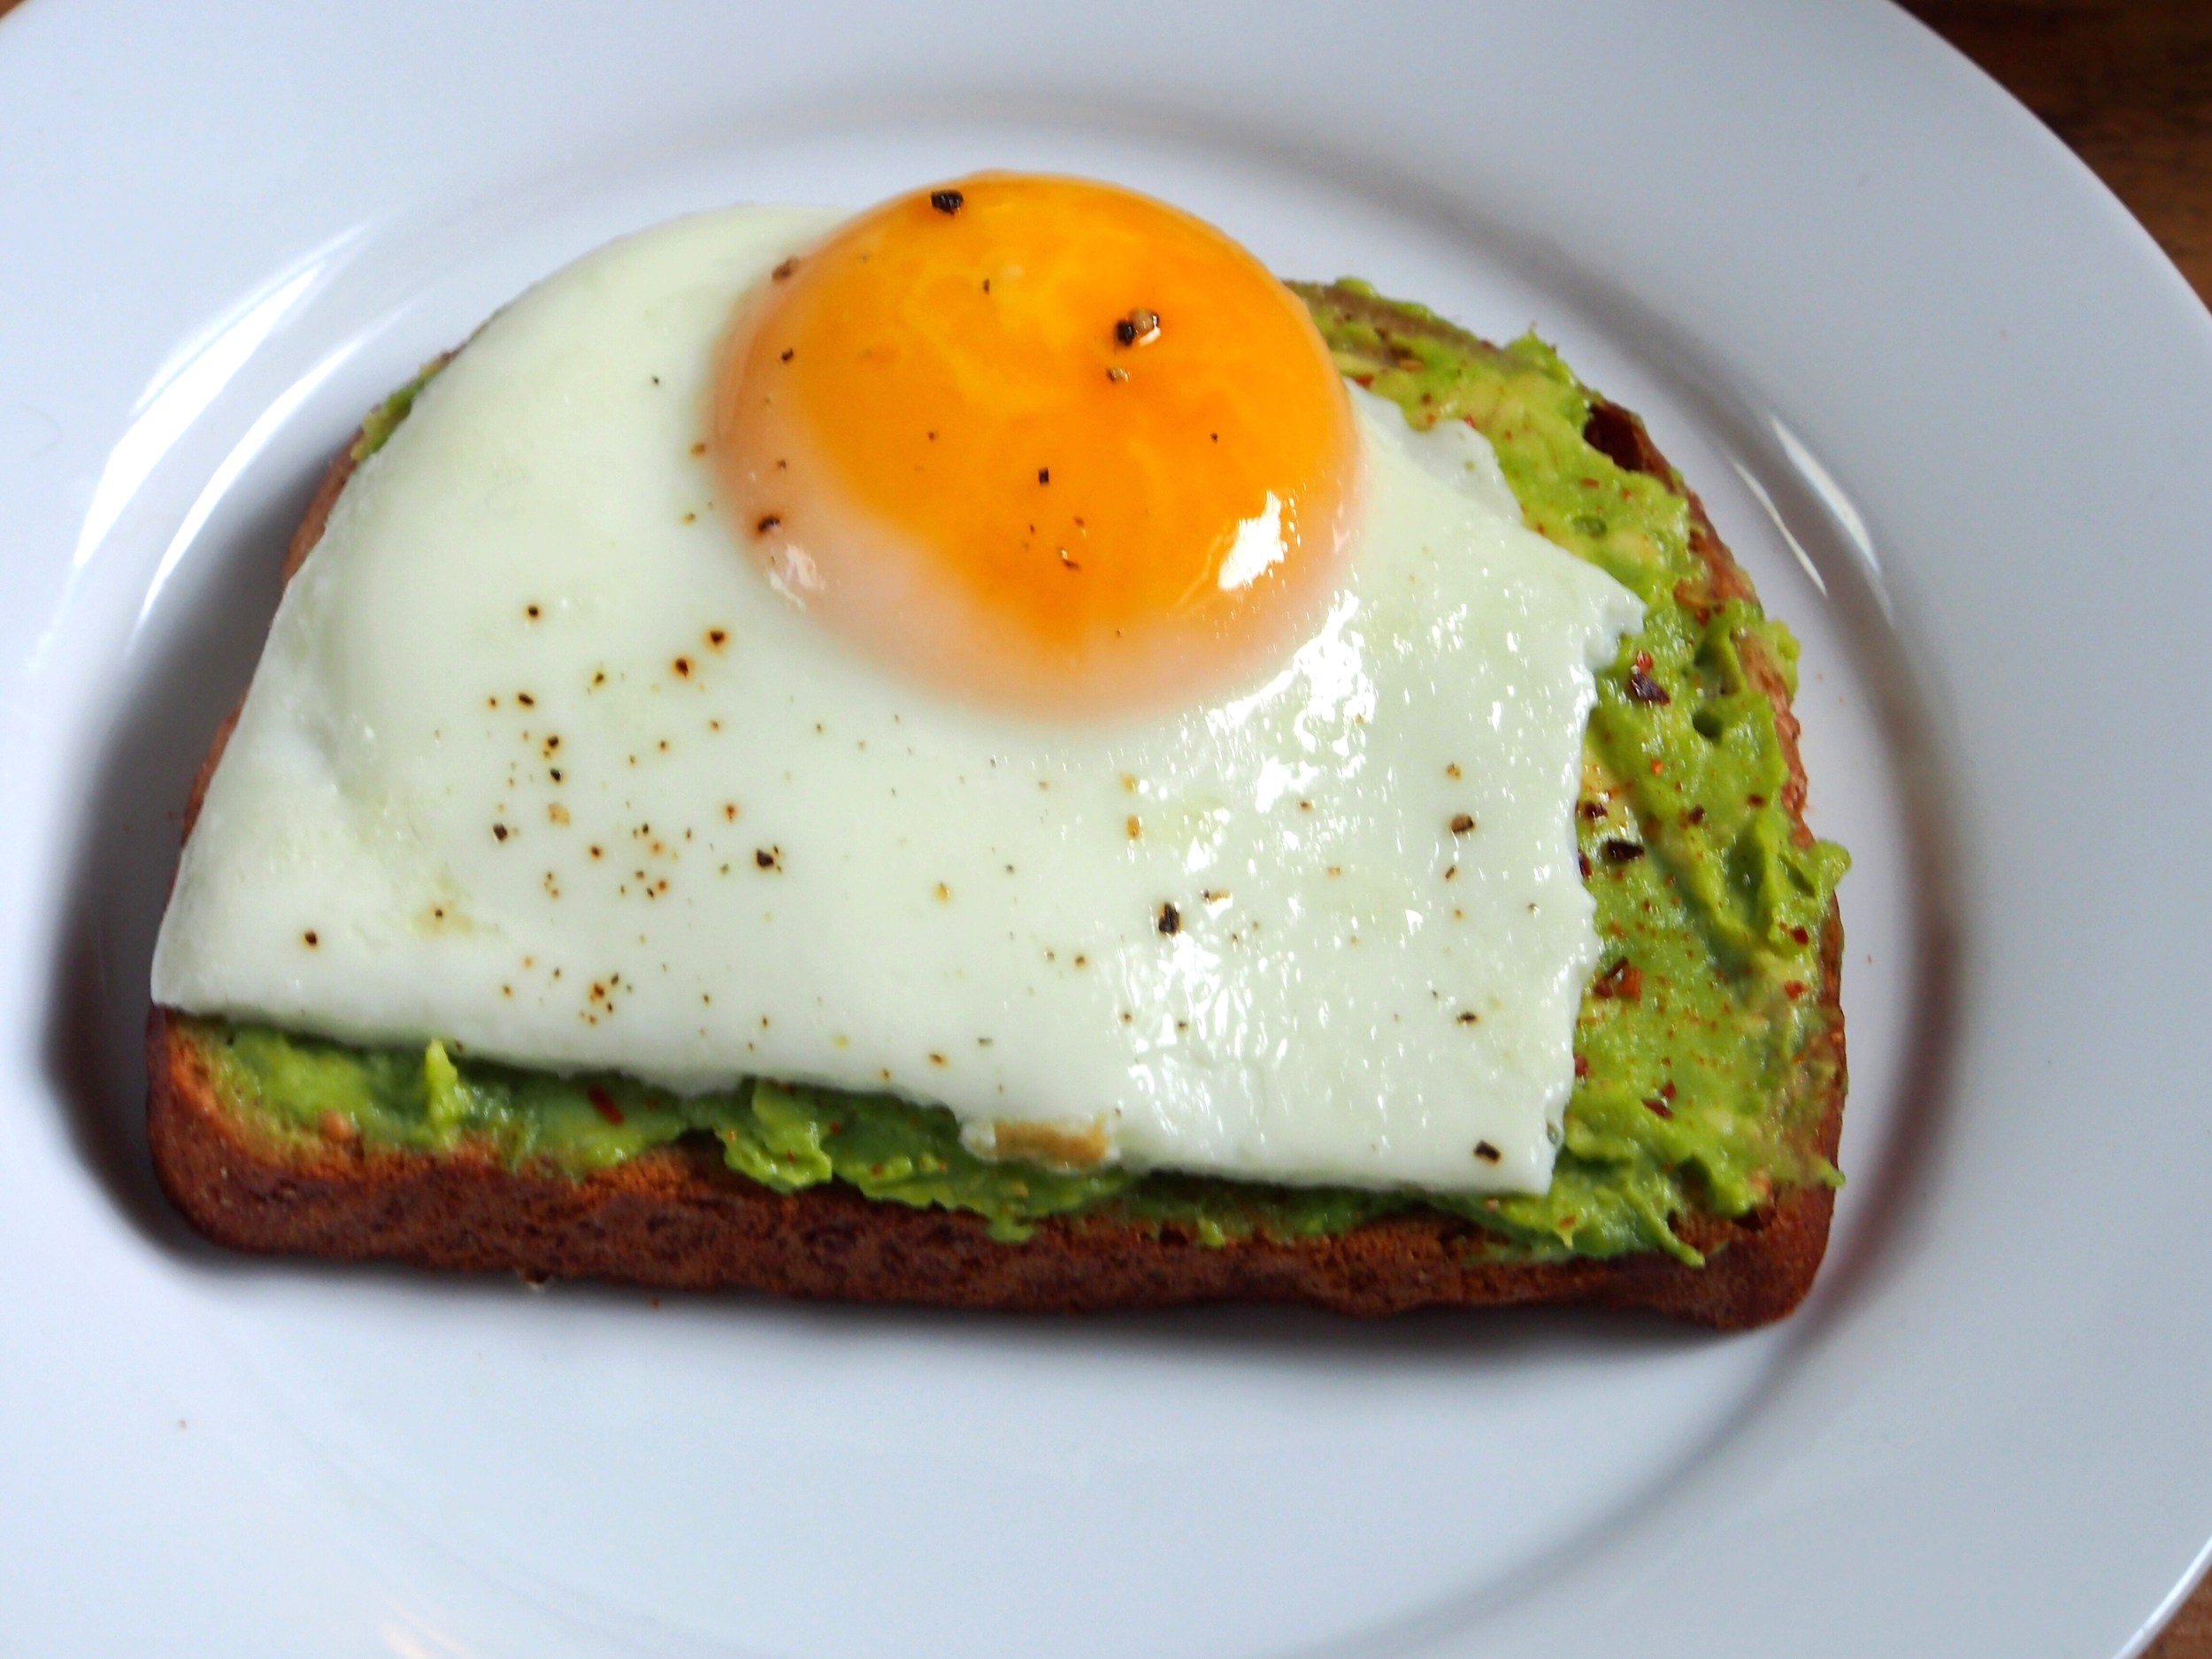 Close-up of the avocado and egg open-faced sandwich. Yum!